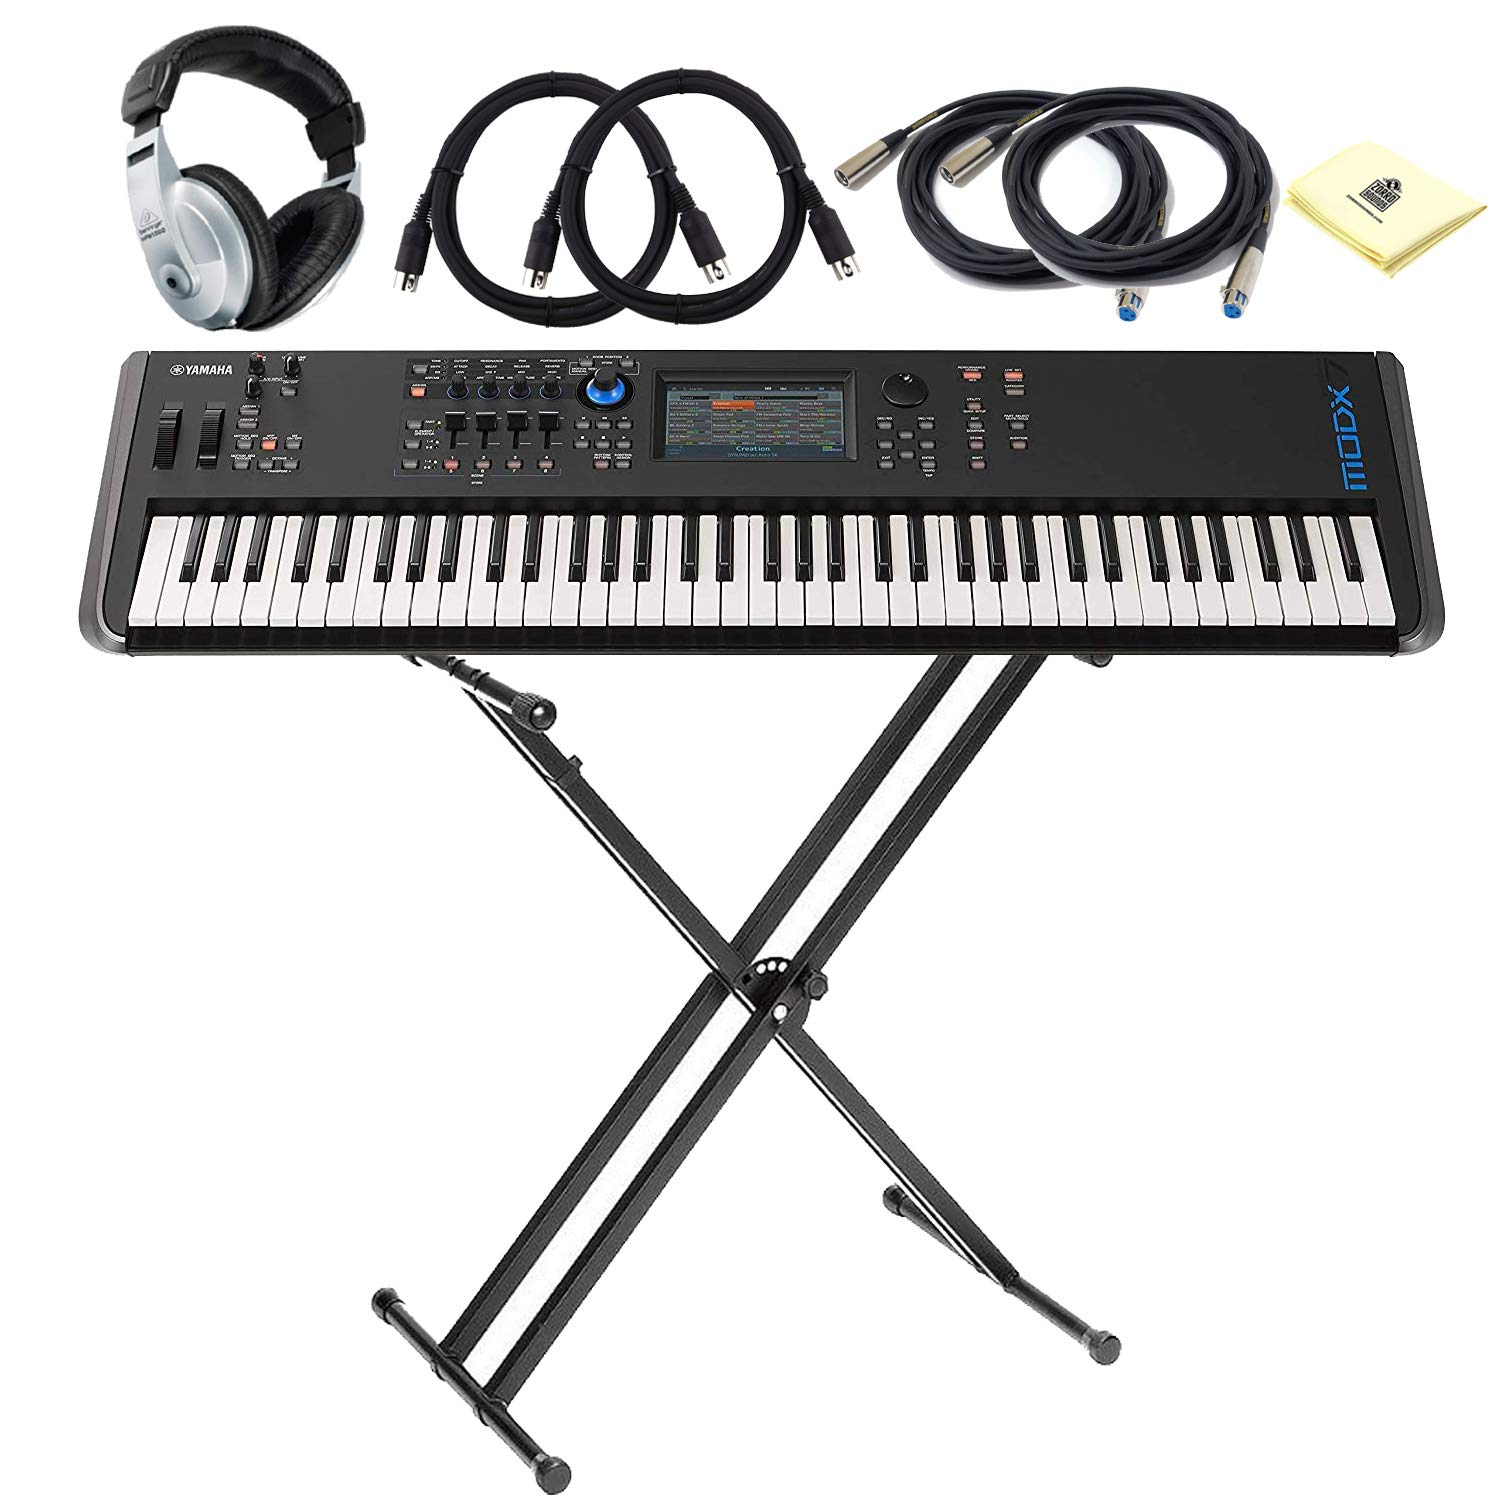 DAW and VST Control BUNDLE with Keyboard Stand 2 x Senor MIDI Cable /& Microphone Cable Headphone and Zorro Sounds Cloth Yamaha MODX7 76-key Synthesizer with LC Synth-weighted Action